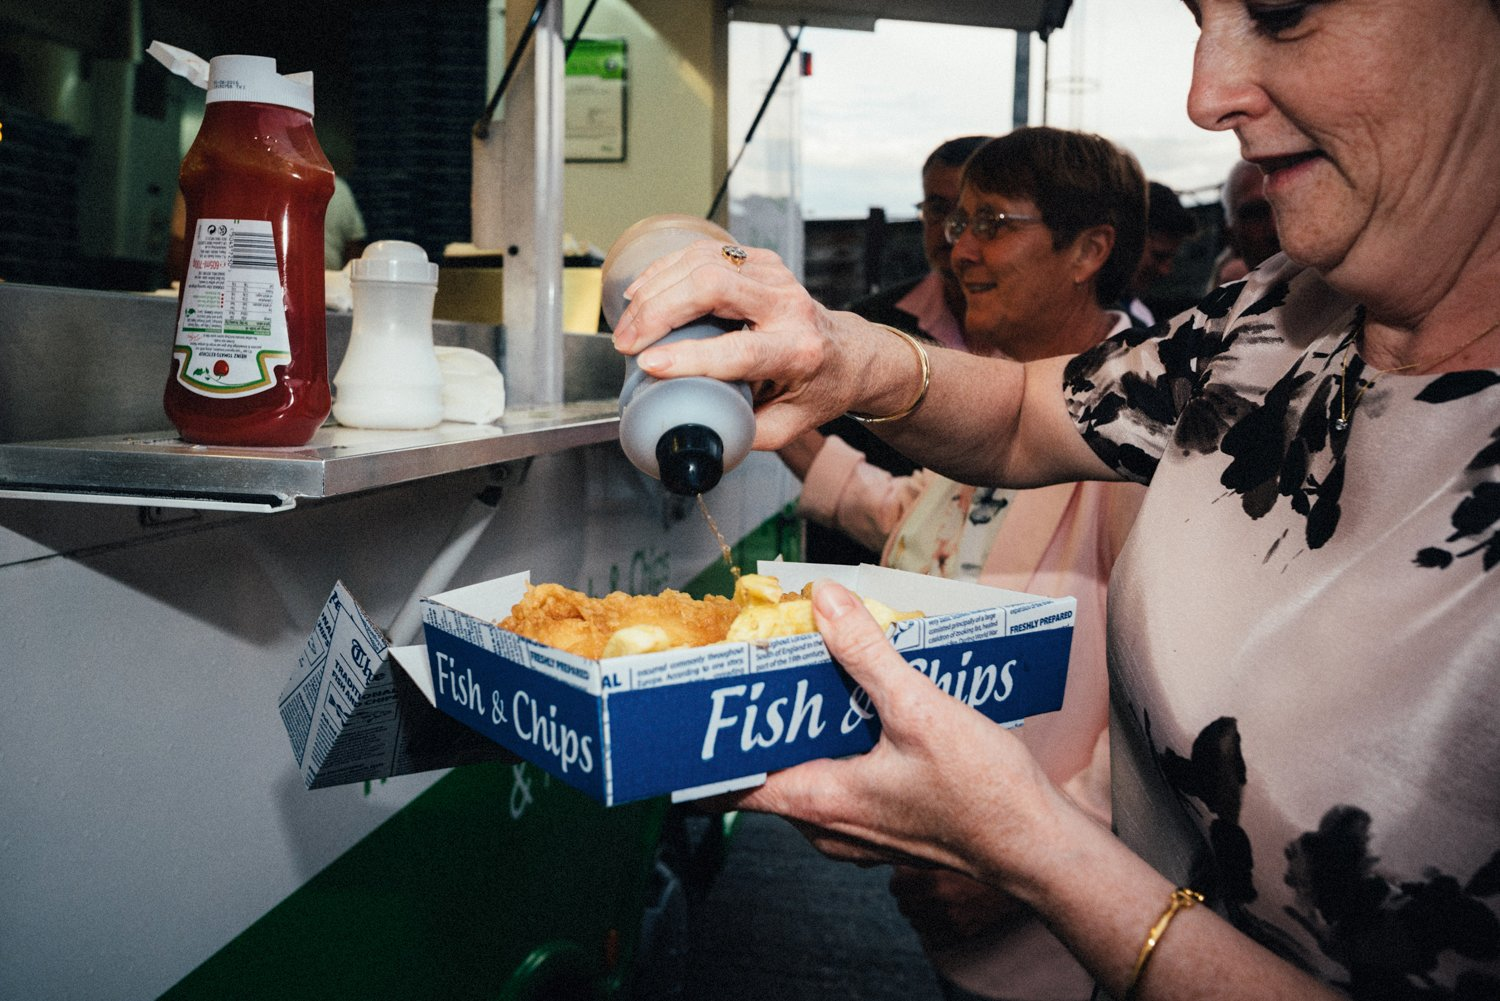 Traditional fish & chips seaside wedding